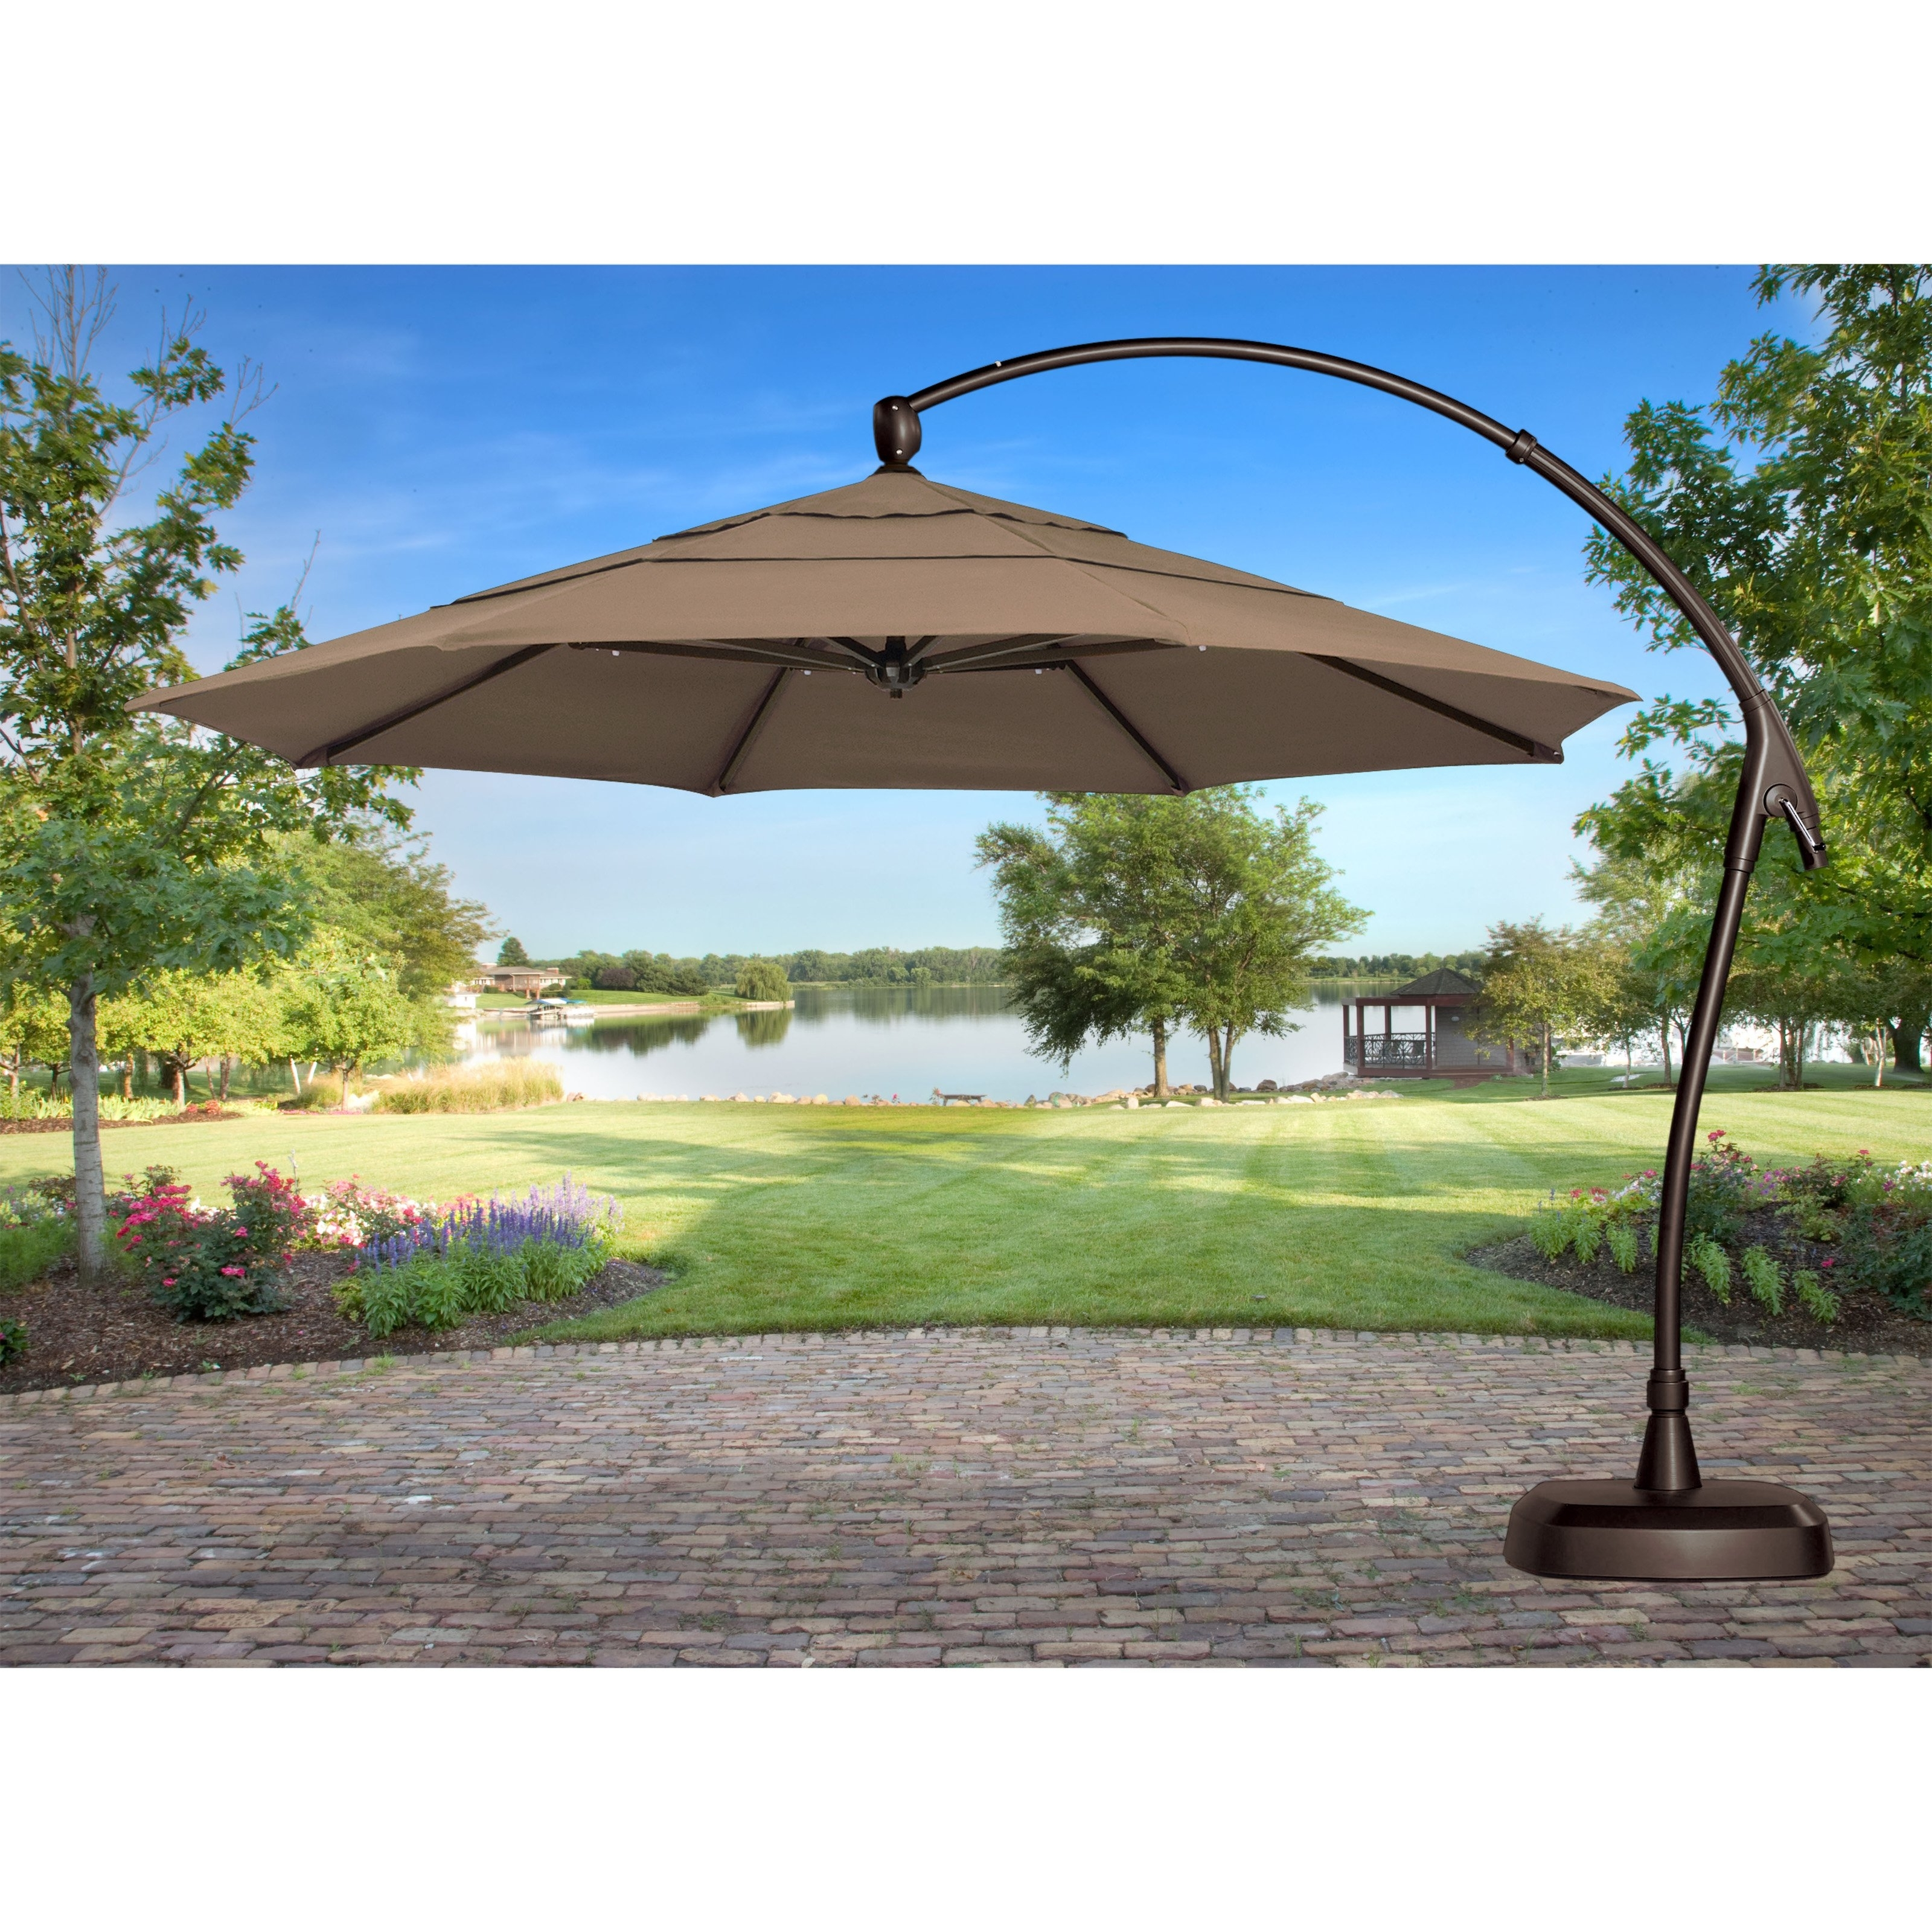 Best And Newest Stylish And Convenient Cantilever Patio Umbrella – Carehomedecor Regarding Cantilever Patio Umbrellas (View 7 of 20)